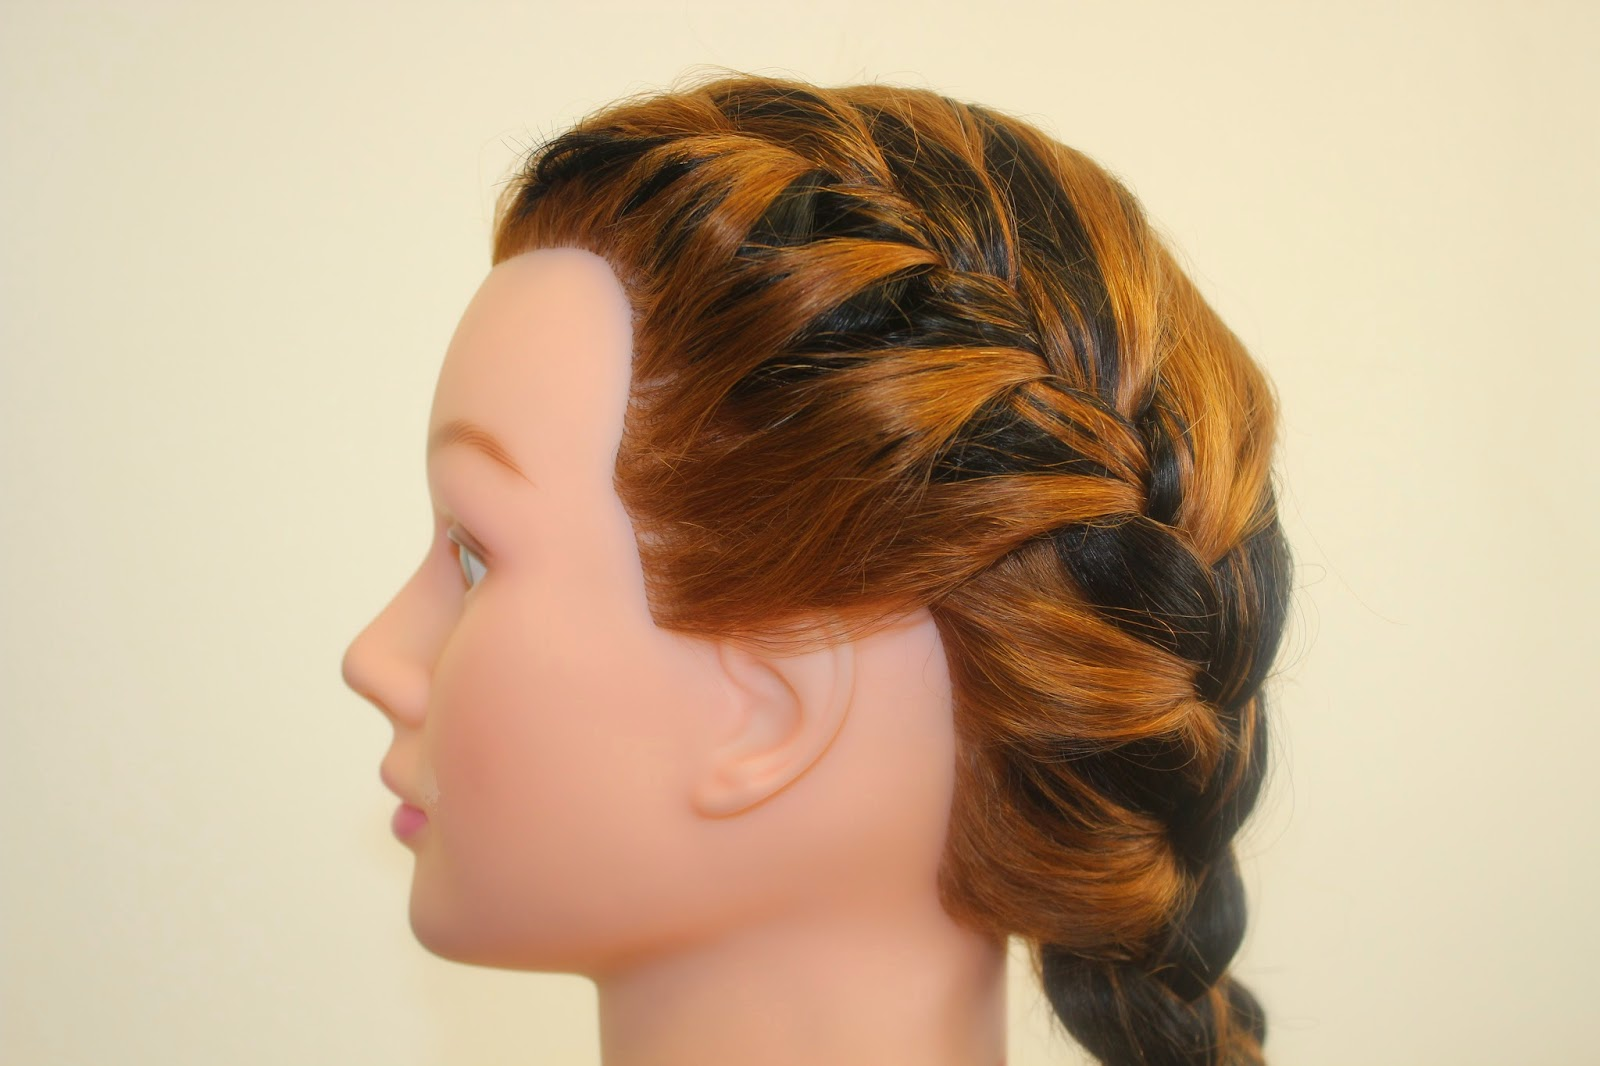 Vexin sew in step by step guide pictures and video tutorial as you can see this sew in allows you a variety of hairstyles and is very simple to do once you master the basics i hope this post helps you create your jeuxipadfo Images